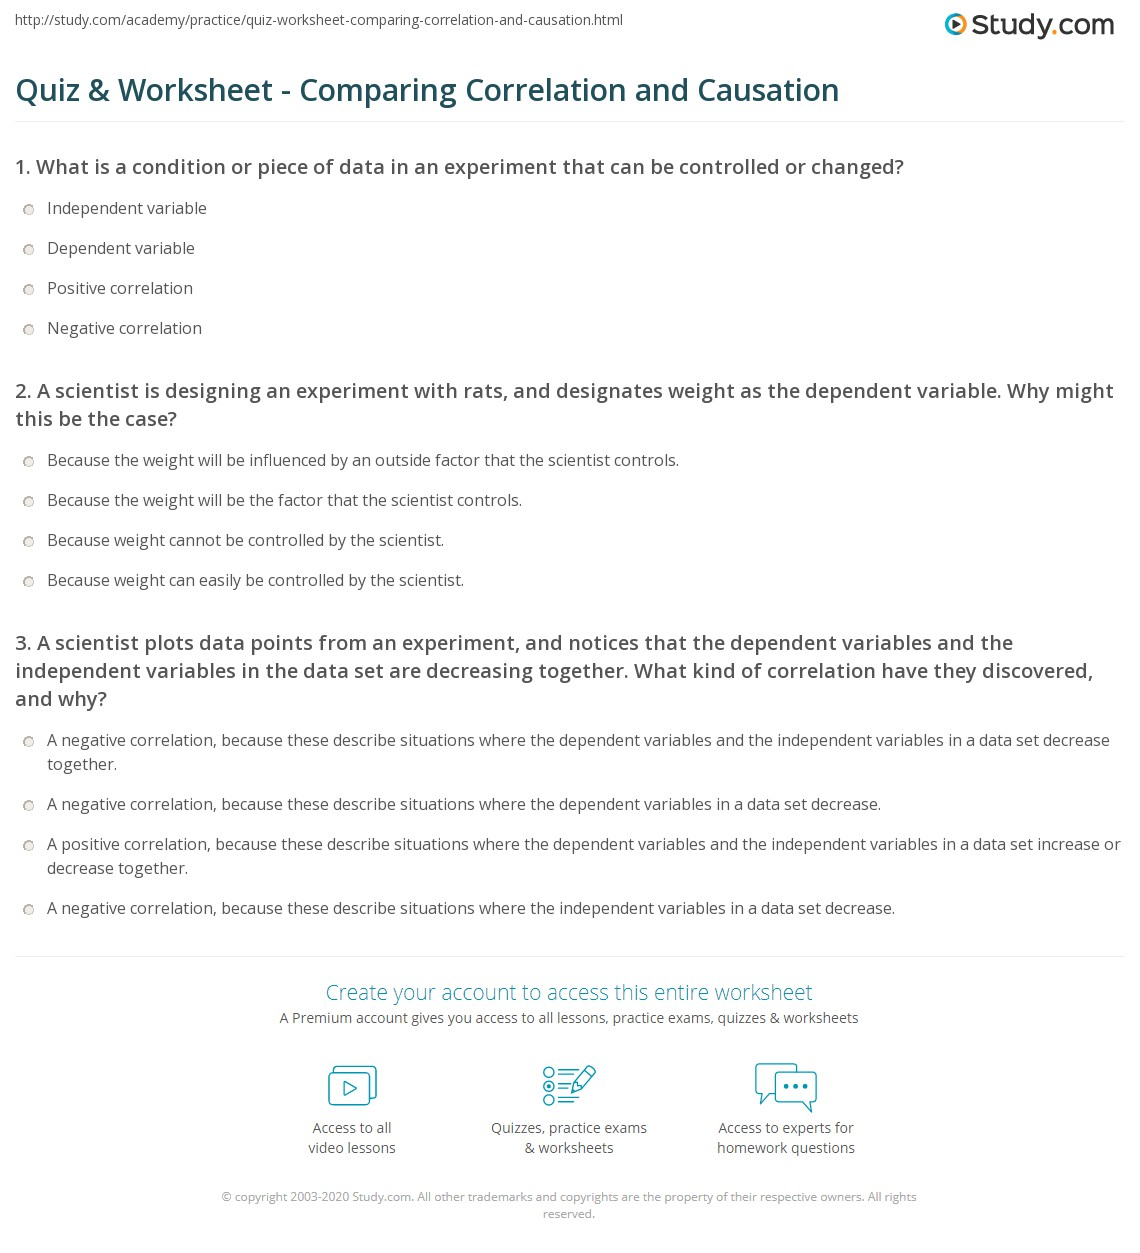 Aldiablosus  Stunning Quiz Amp Worksheet  Comparing Correlation And Causation  Studycom With Interesting Print Correlation Vs Causation Differences Amp Definition Worksheet With Beautiful Consumer Math Worksheets Also Th Step Worksheets In Addition Mole Particle Practice Worksheet And Ez Worksheet As Well As Th Grade Science Worksheets Additionally Bill Nye Heat Worksheet Answers From Studycom With Aldiablosus  Interesting Quiz Amp Worksheet  Comparing Correlation And Causation  Studycom With Beautiful Print Correlation Vs Causation Differences Amp Definition Worksheet And Stunning Consumer Math Worksheets Also Th Step Worksheets In Addition Mole Particle Practice Worksheet From Studycom